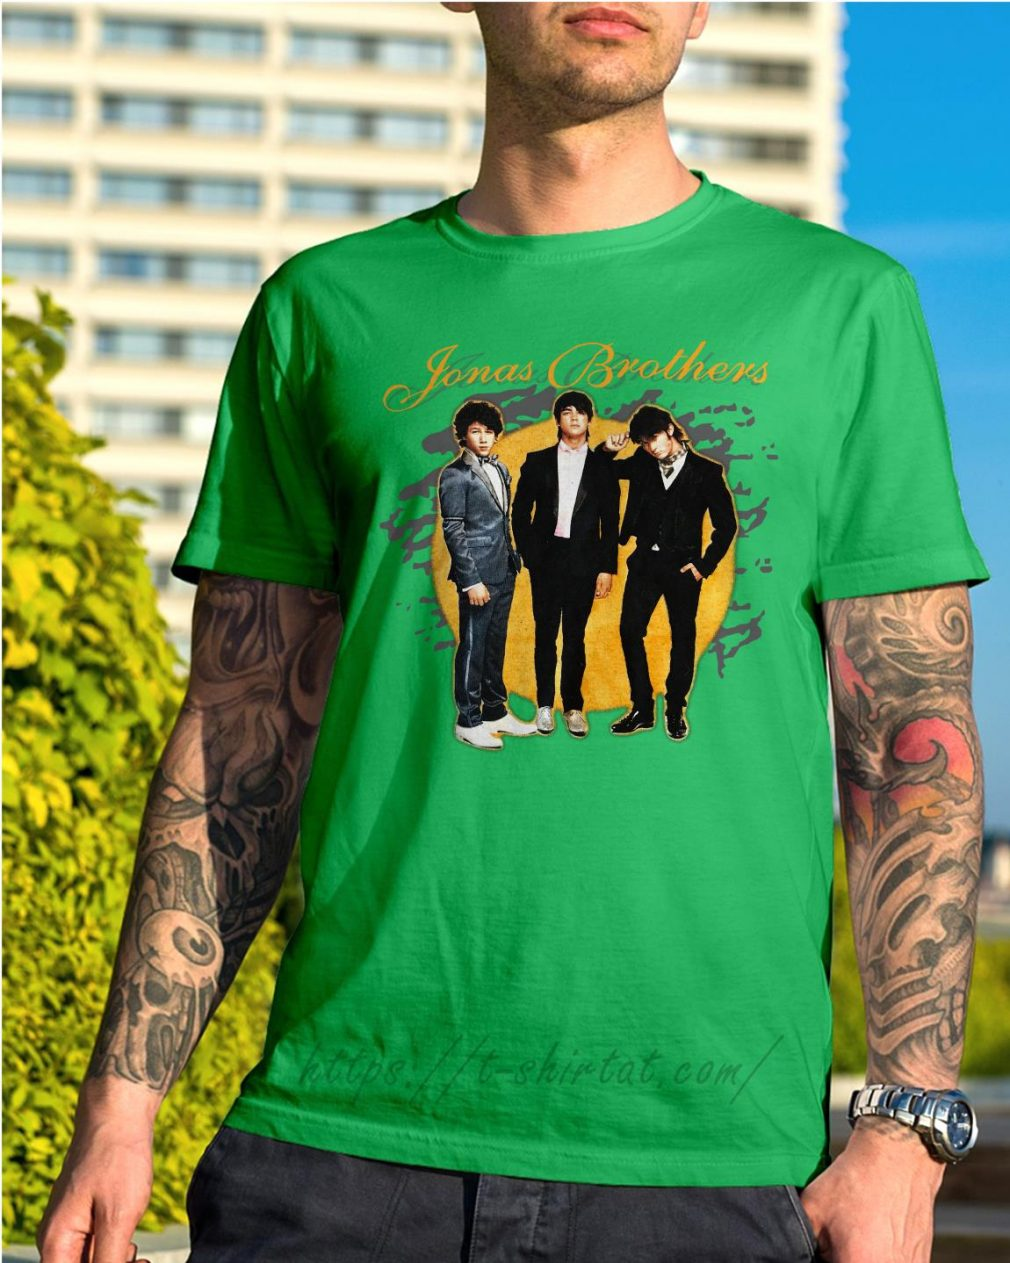 Jonas Brothers concert Shirt green